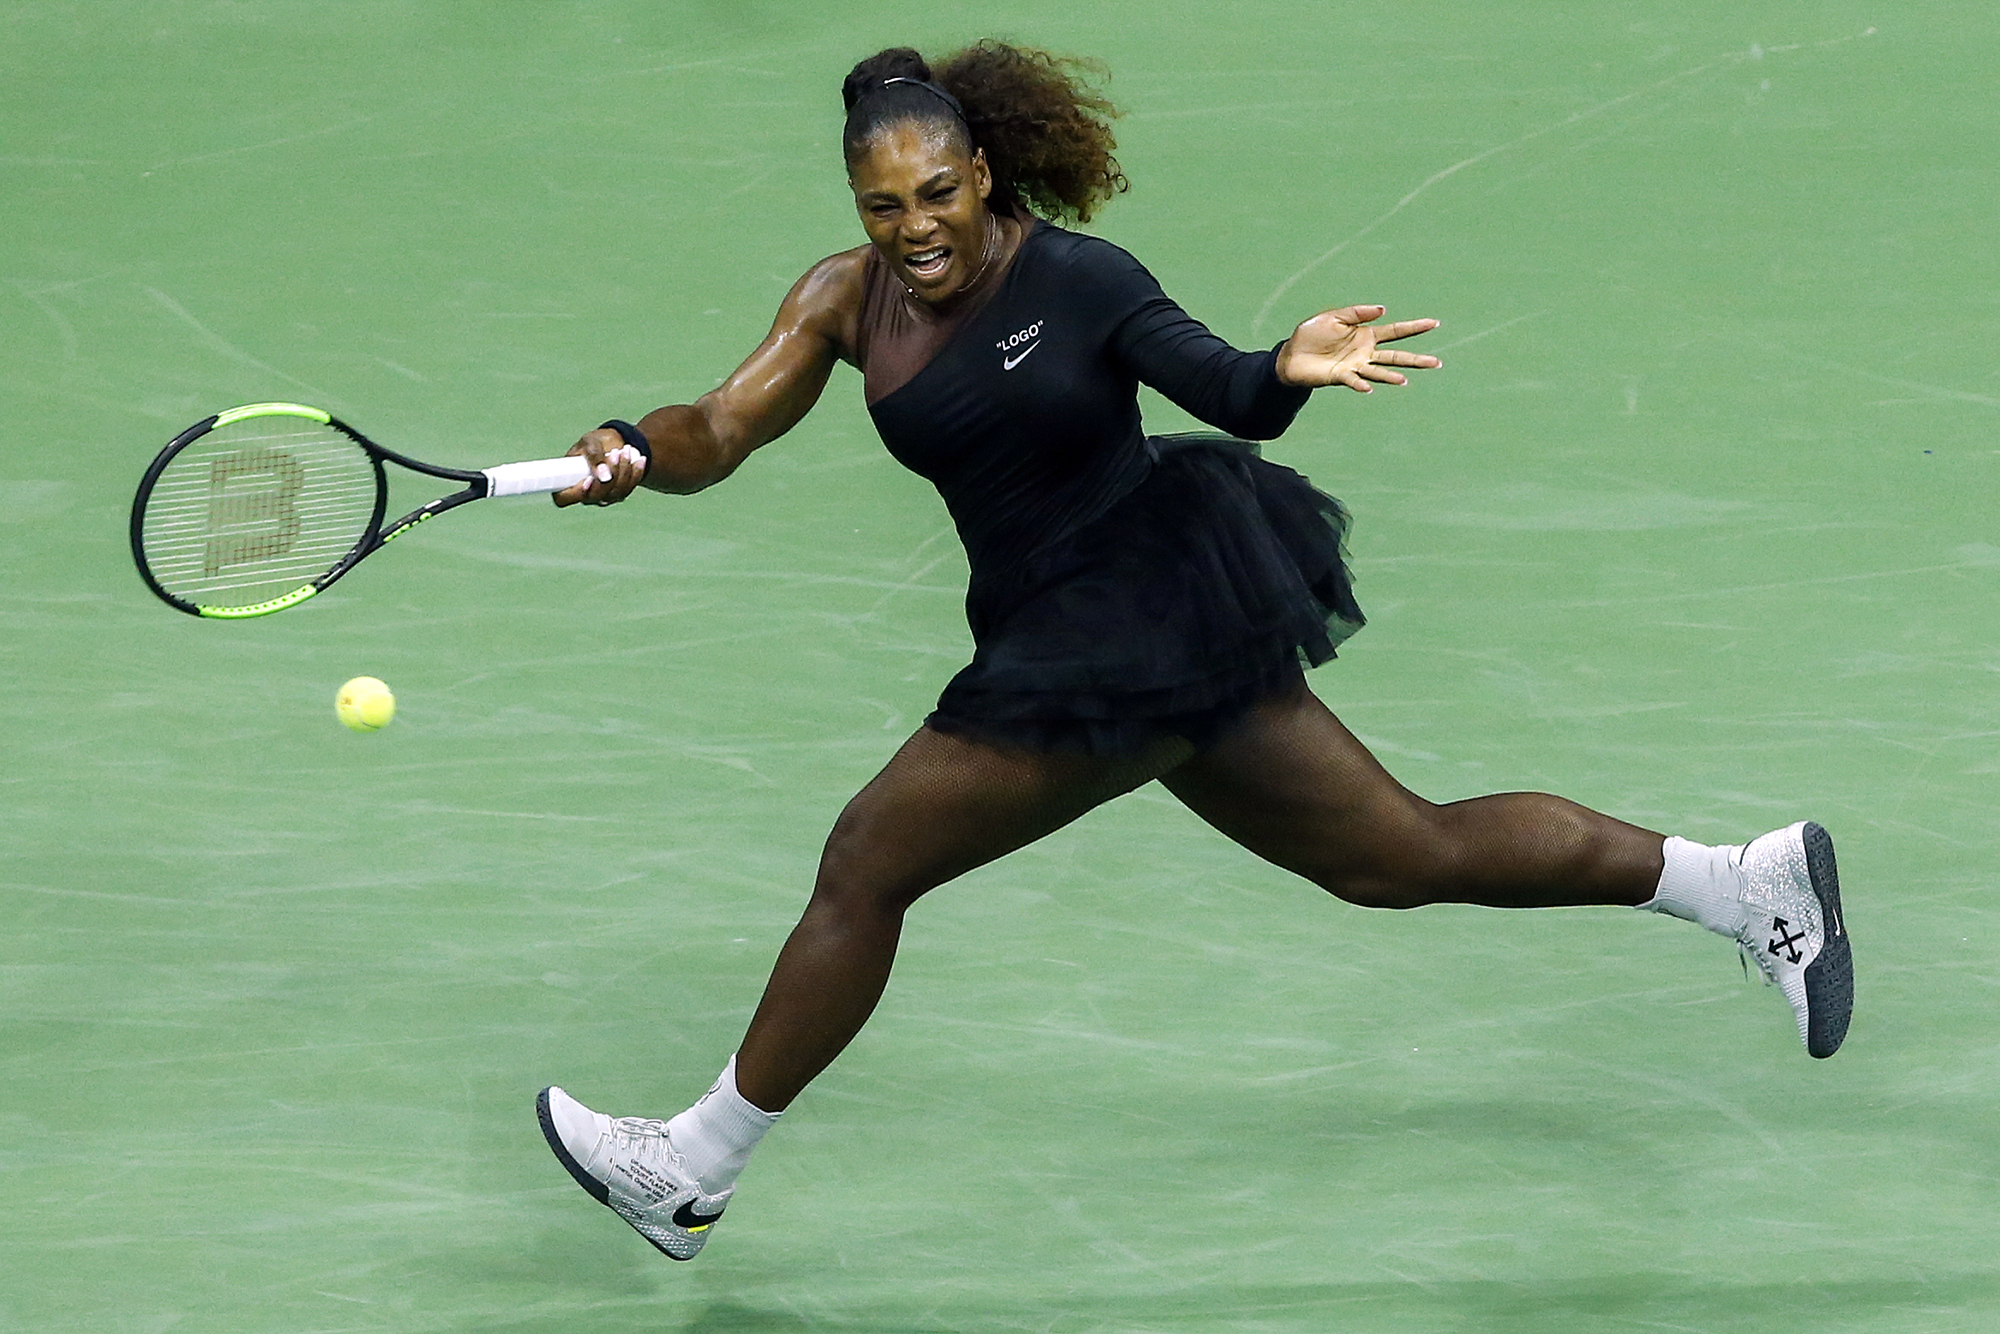 Serena's debut tennis tutu for the 2018 US Open was right on point.